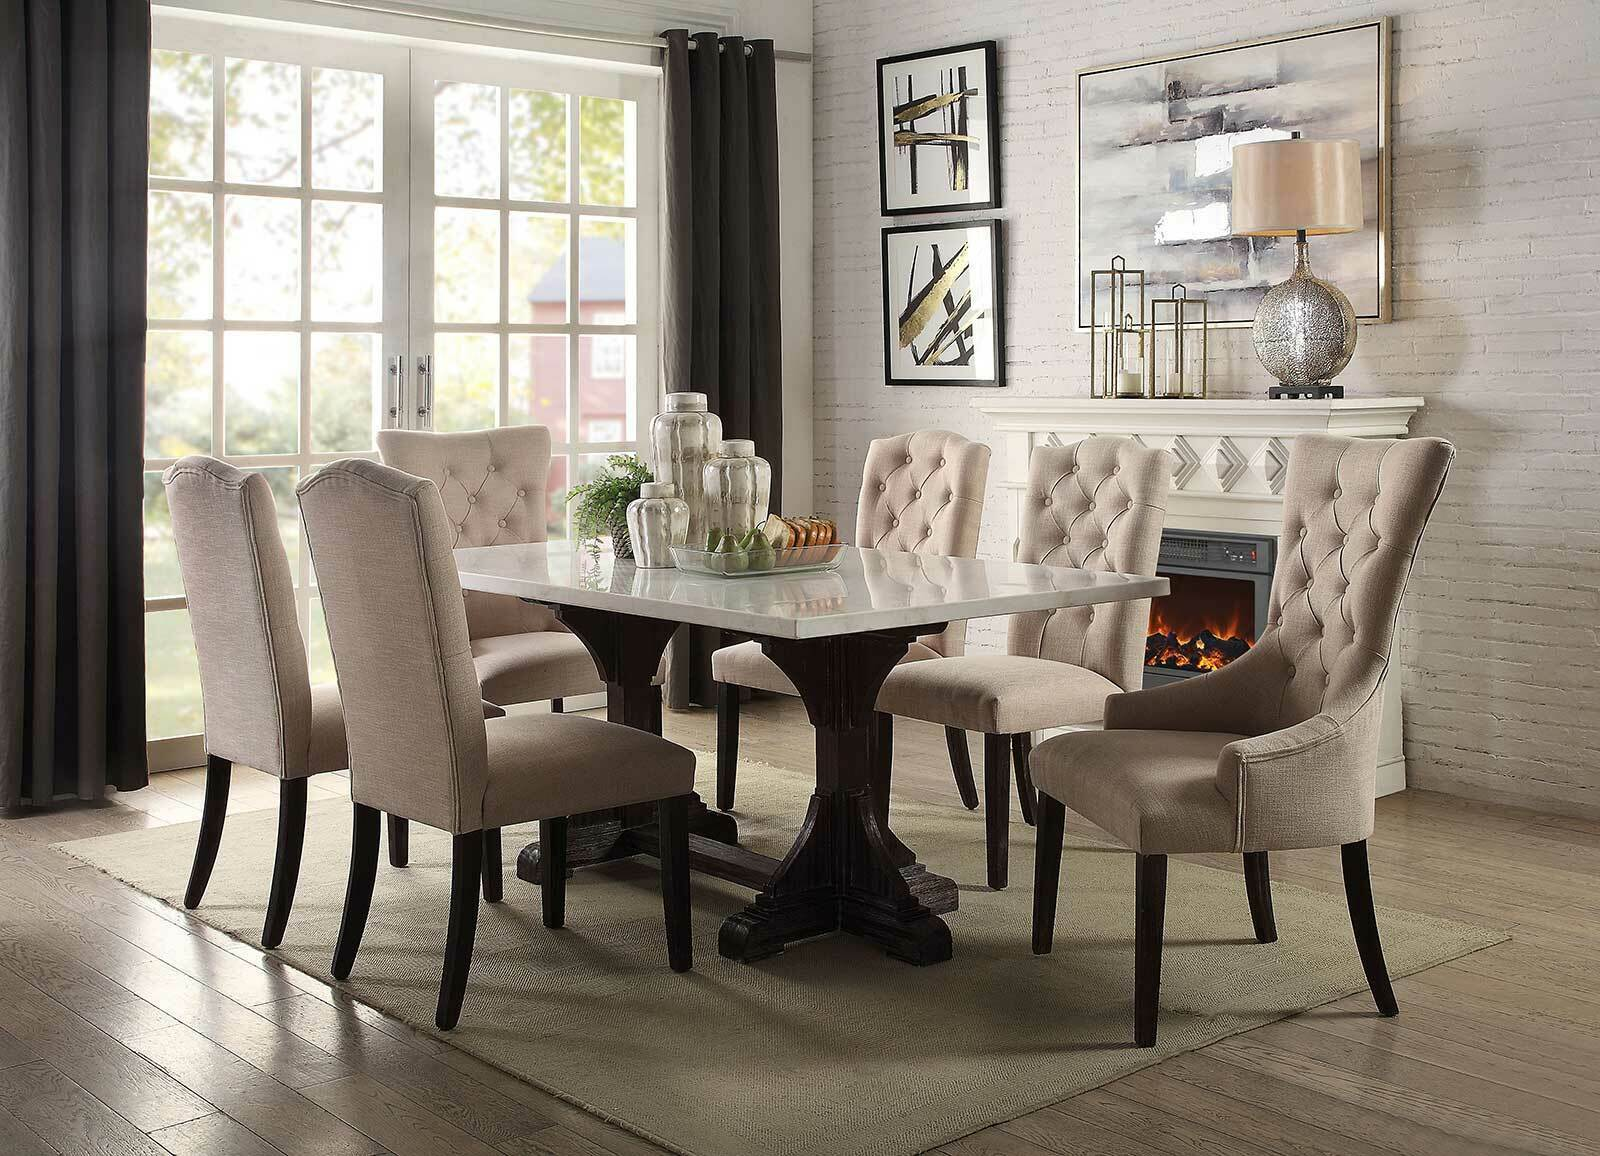 7 piece Dining Room Rectangular Marble Top Table & Fabric Chairs Set